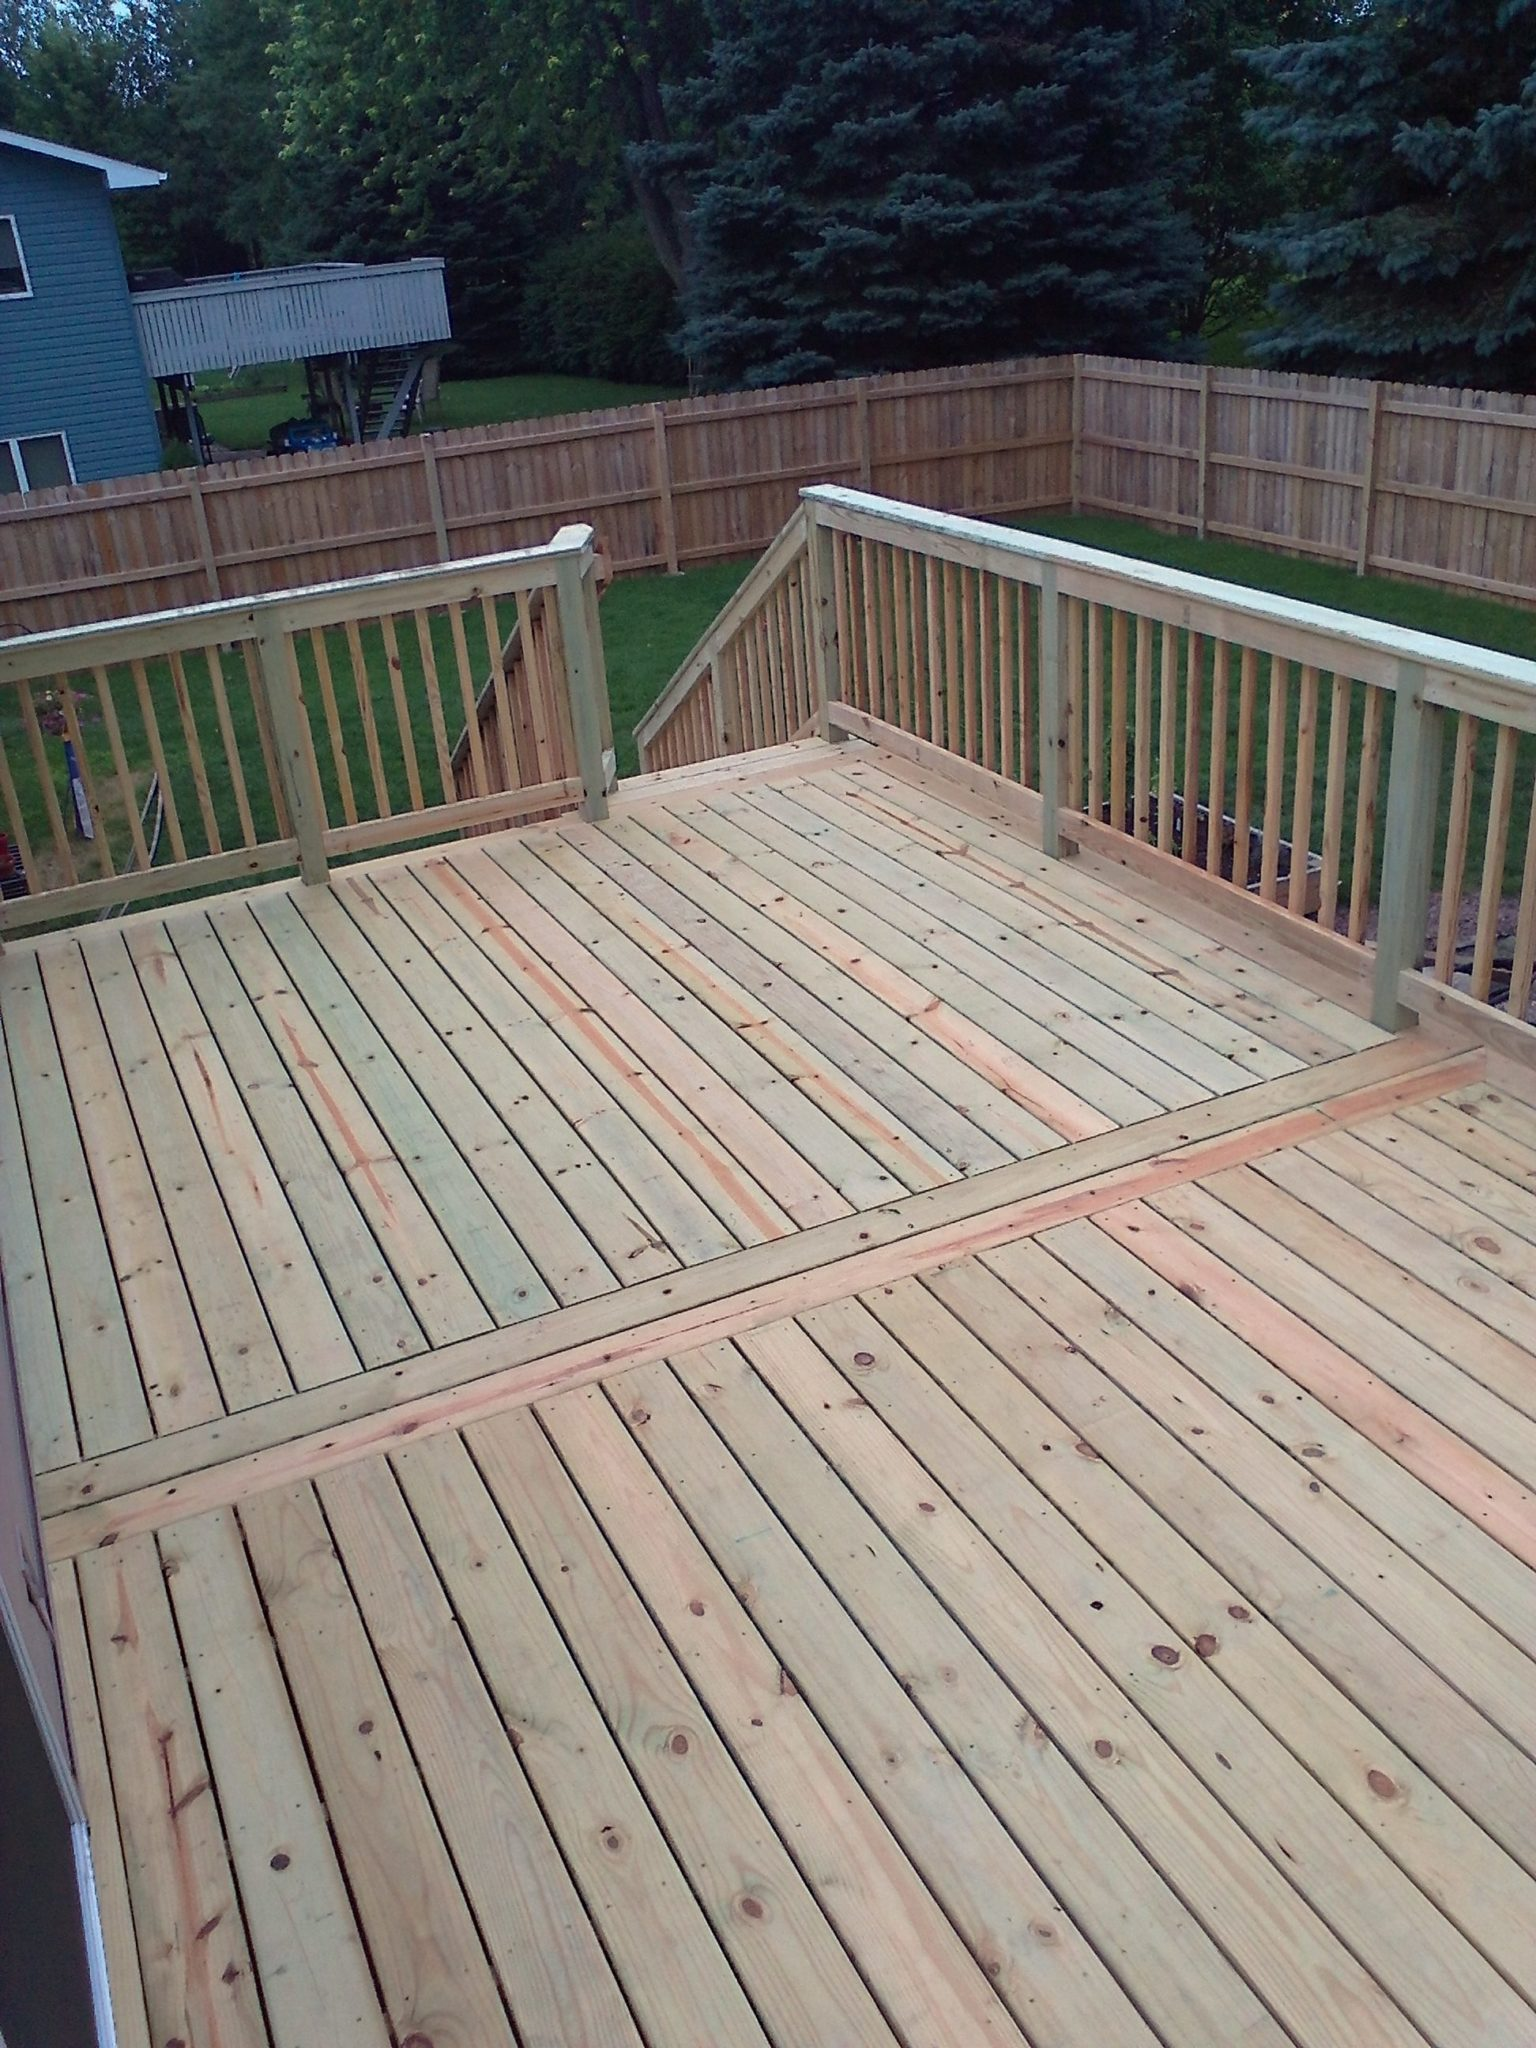 mankato-deck-and-railing-111808